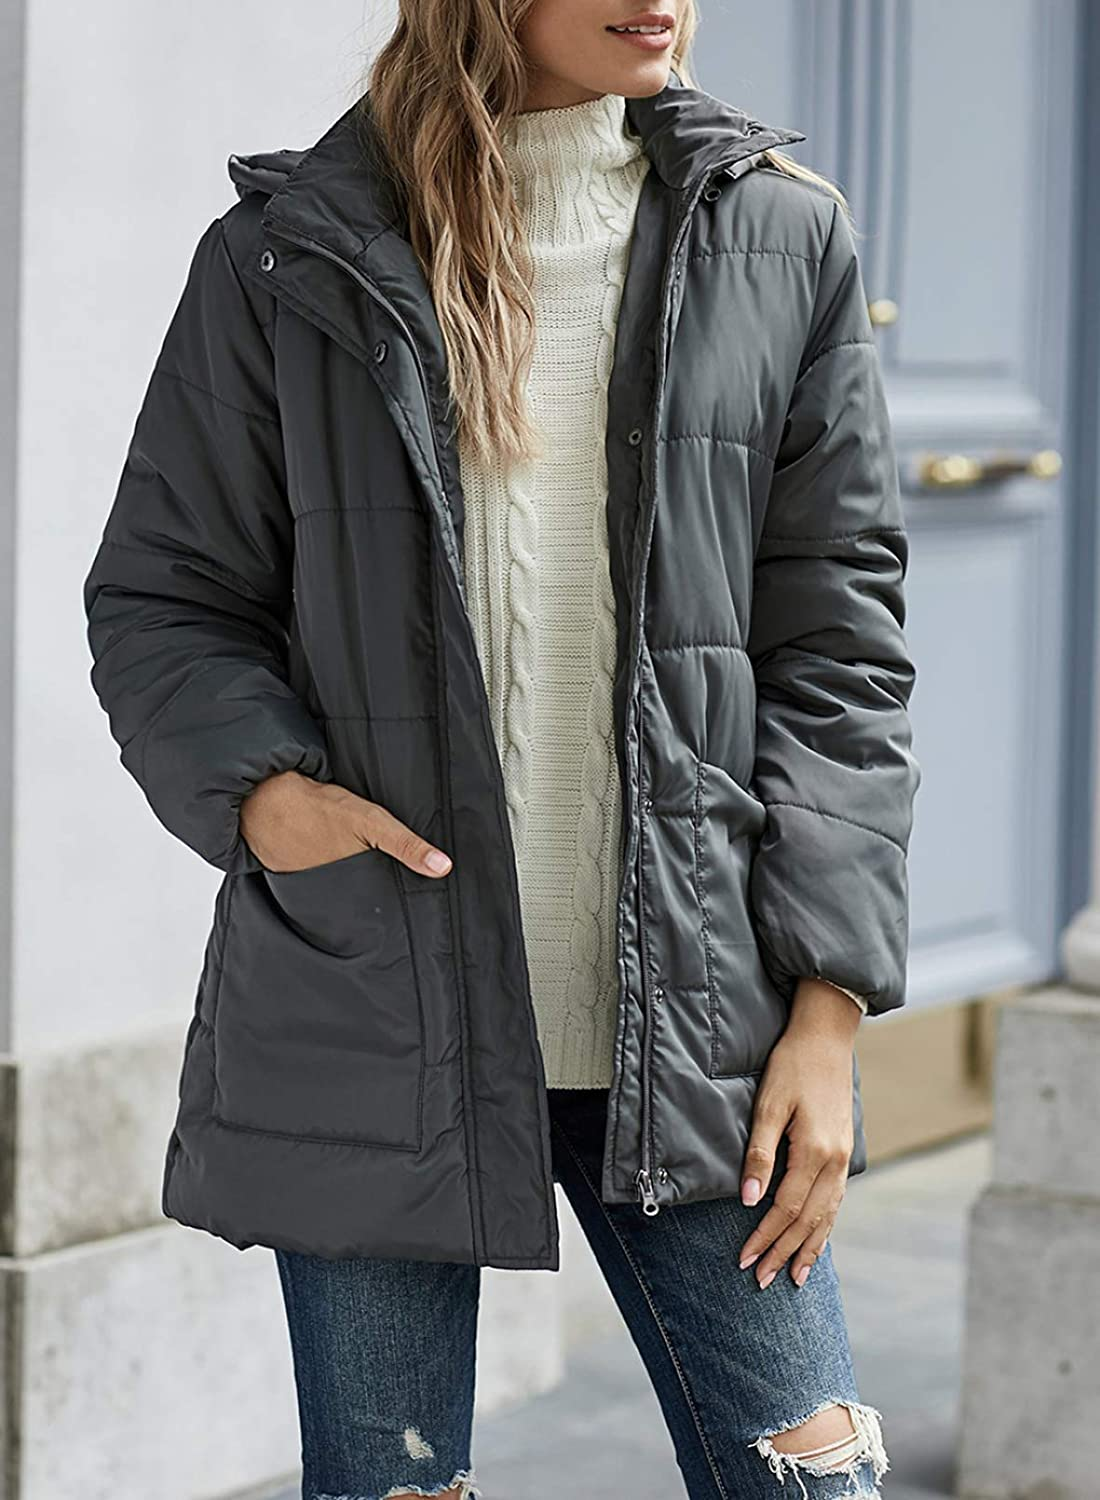 Asyoly Womens Winter Warm Zip Up Quilted Jacket Outerwear Coat with Pockets